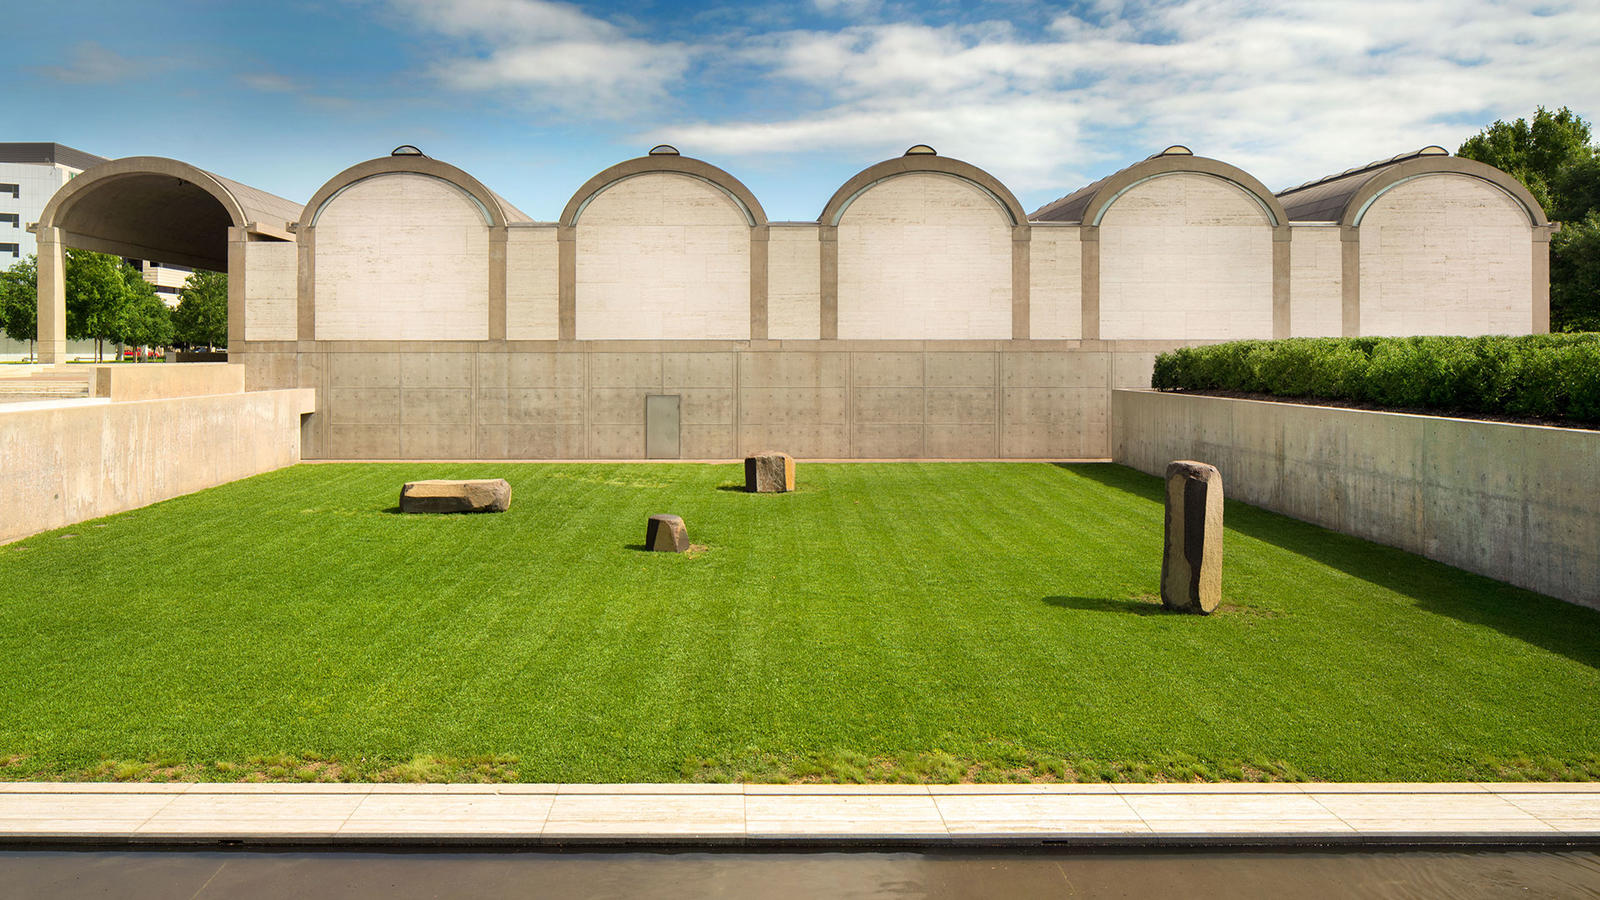 Kahn Building, south facade with the Noguchi Garden, photo by Nic Lehoux